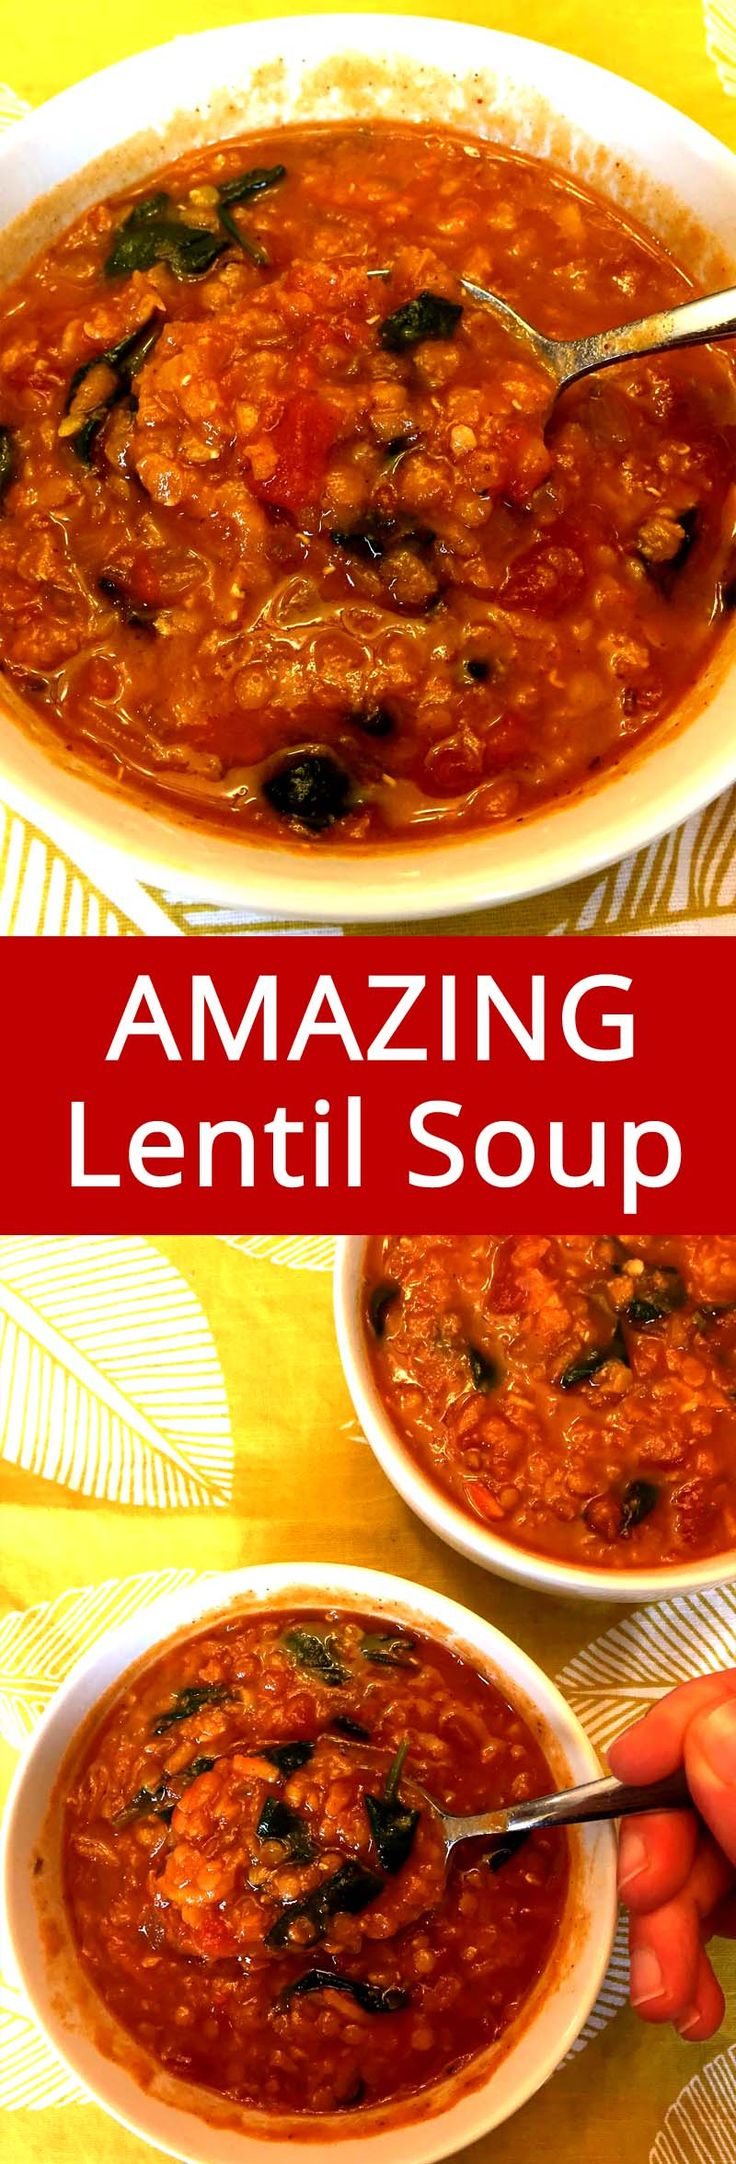 This is the best lentil soup ever! So yummy and filling, and healthy too!| MelanieCooks.com